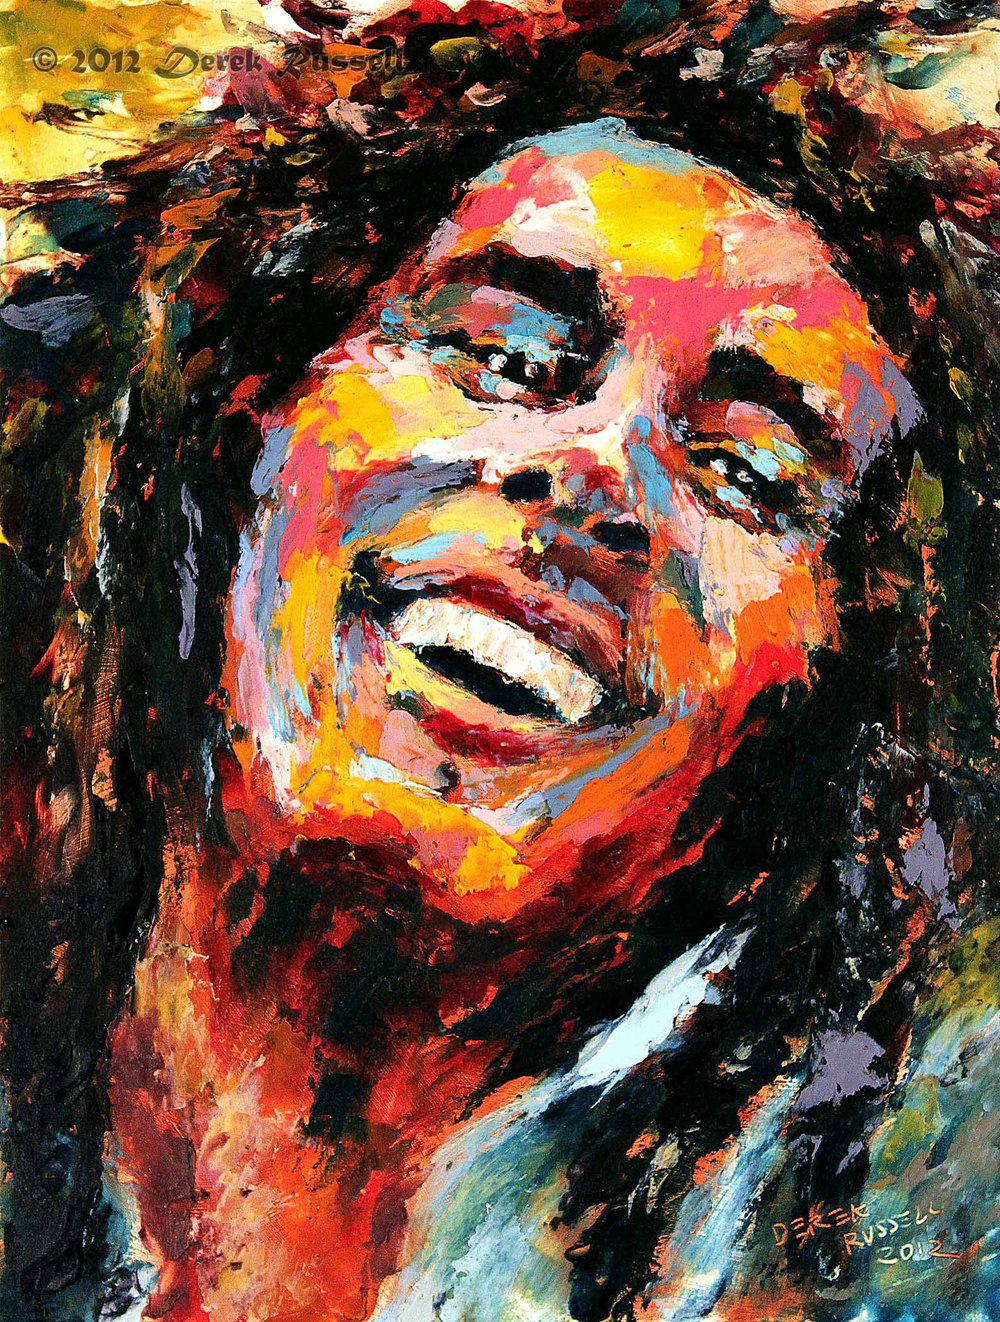 Bob marley original oil painting derek russell for Call for mural artists 2014